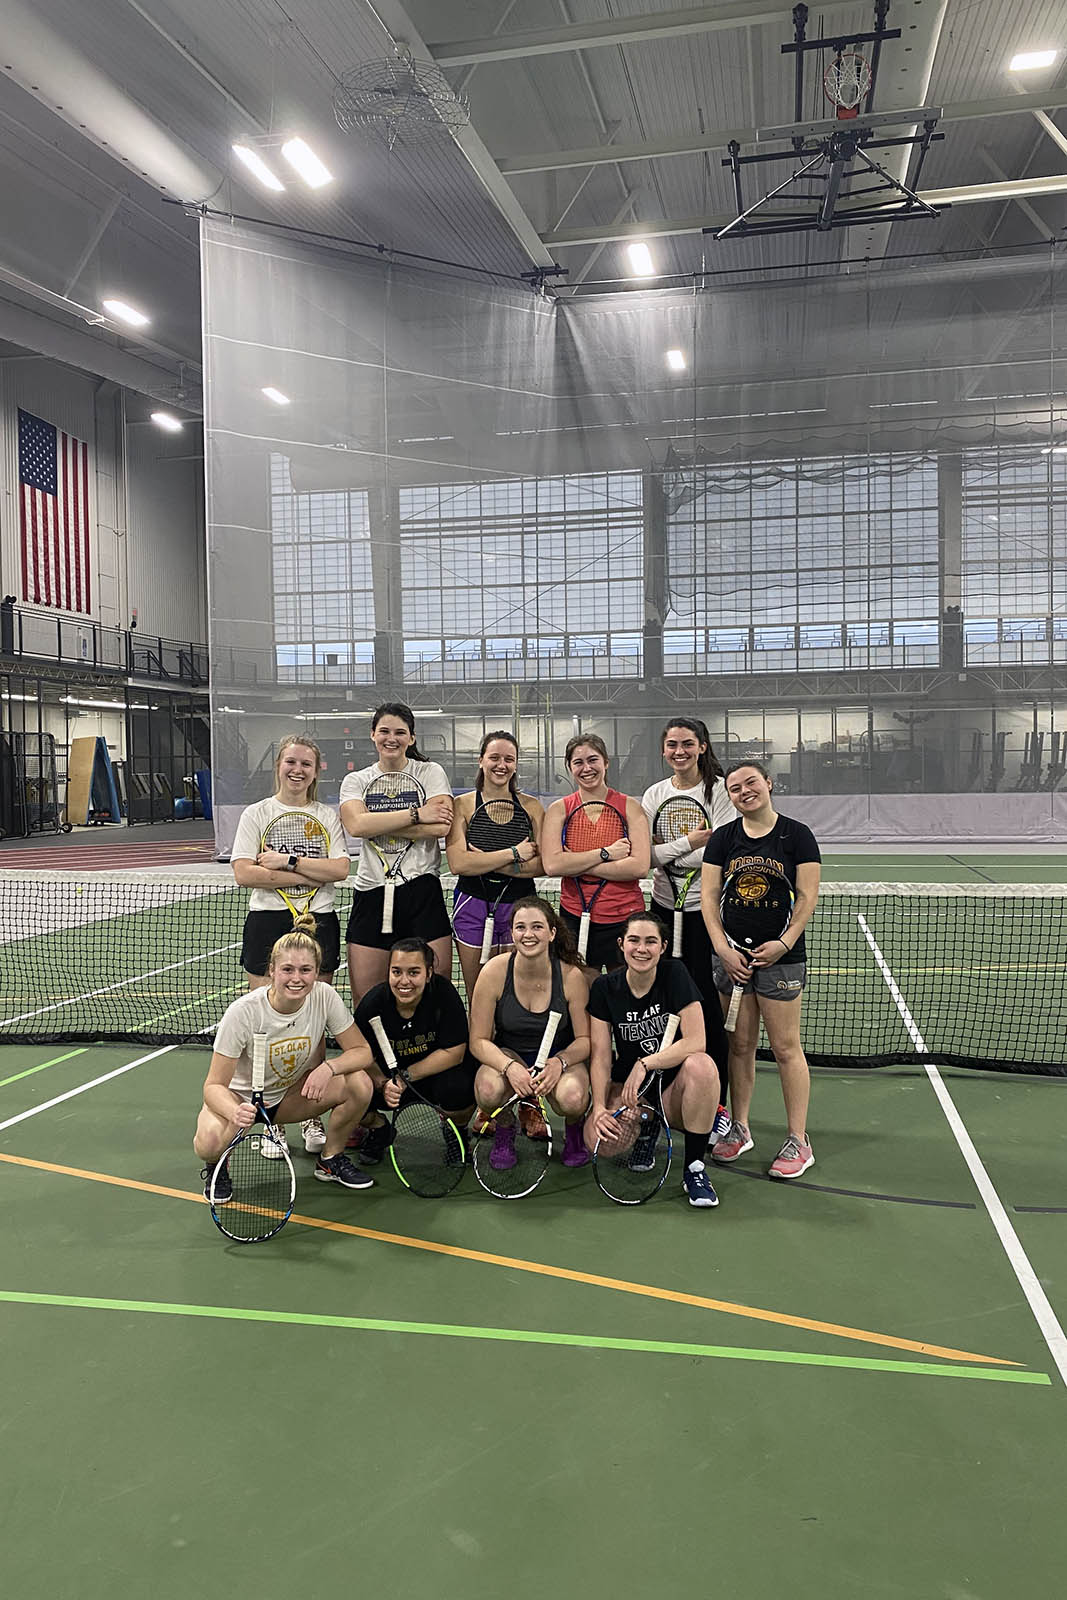 Picture of members of the St. Olaf women's tennis team holding rackets in the indoor tennis court in Tostrud.